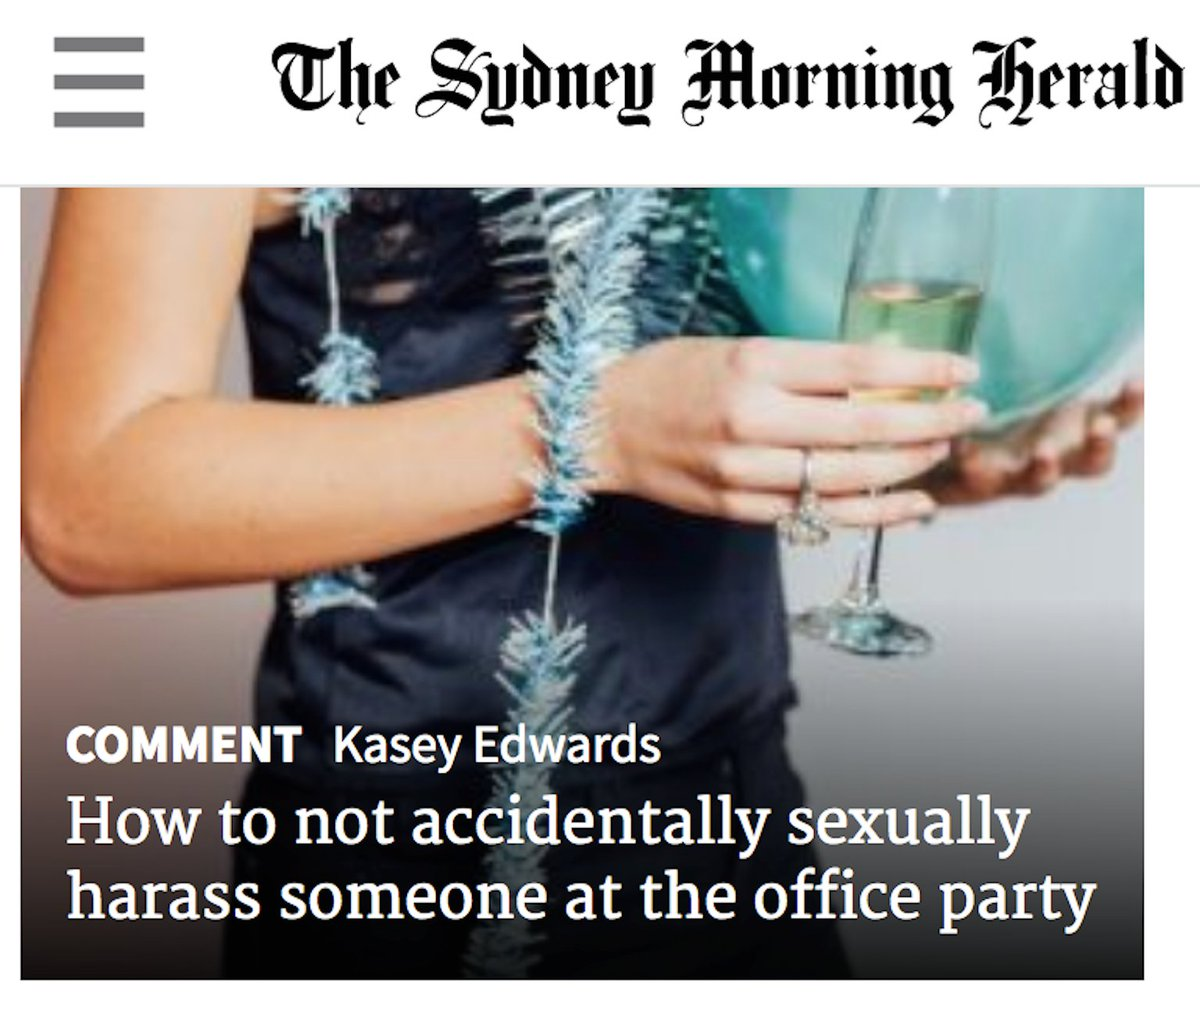 """test Twitter Media - Awkward ambiguity: From David Morris: The Sydney Morning Herald website is currently showing a headline – """"How to… https://t.co/T4ynM74kcj https://t.co/bHRyQp0ish"""